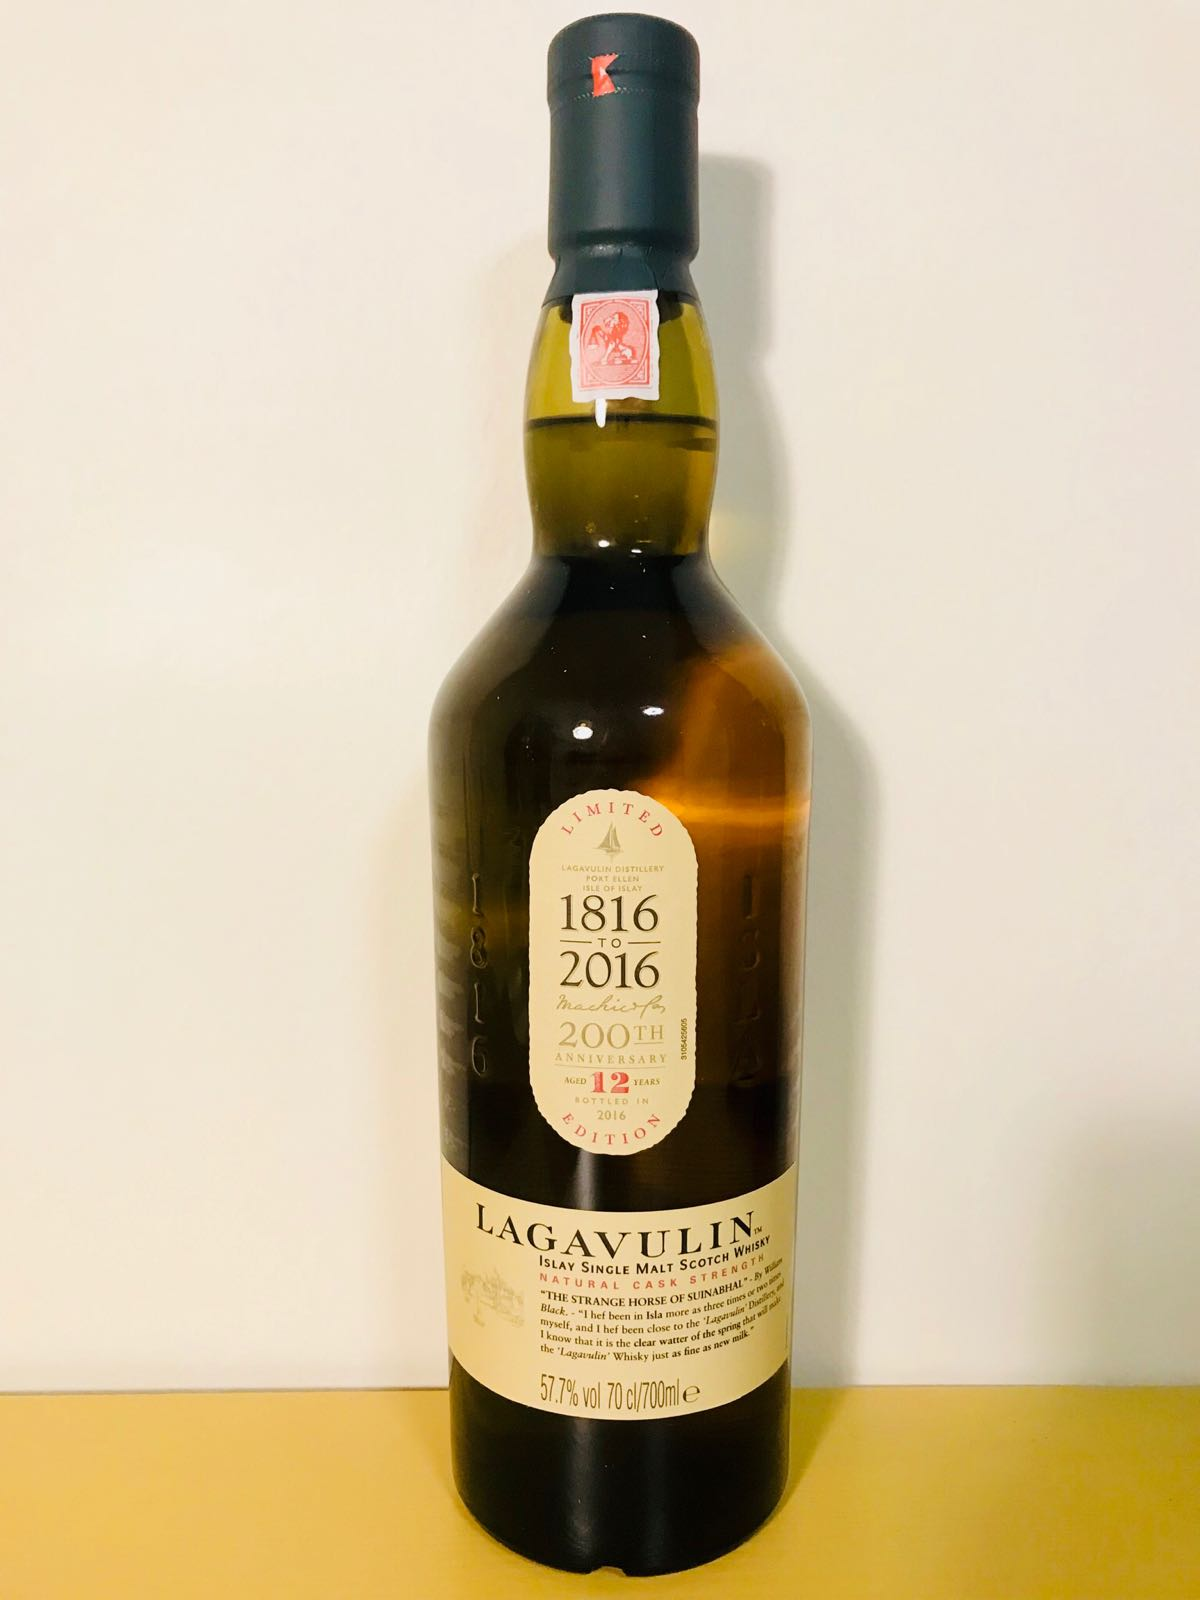 Lagavulin 12 2016 special release